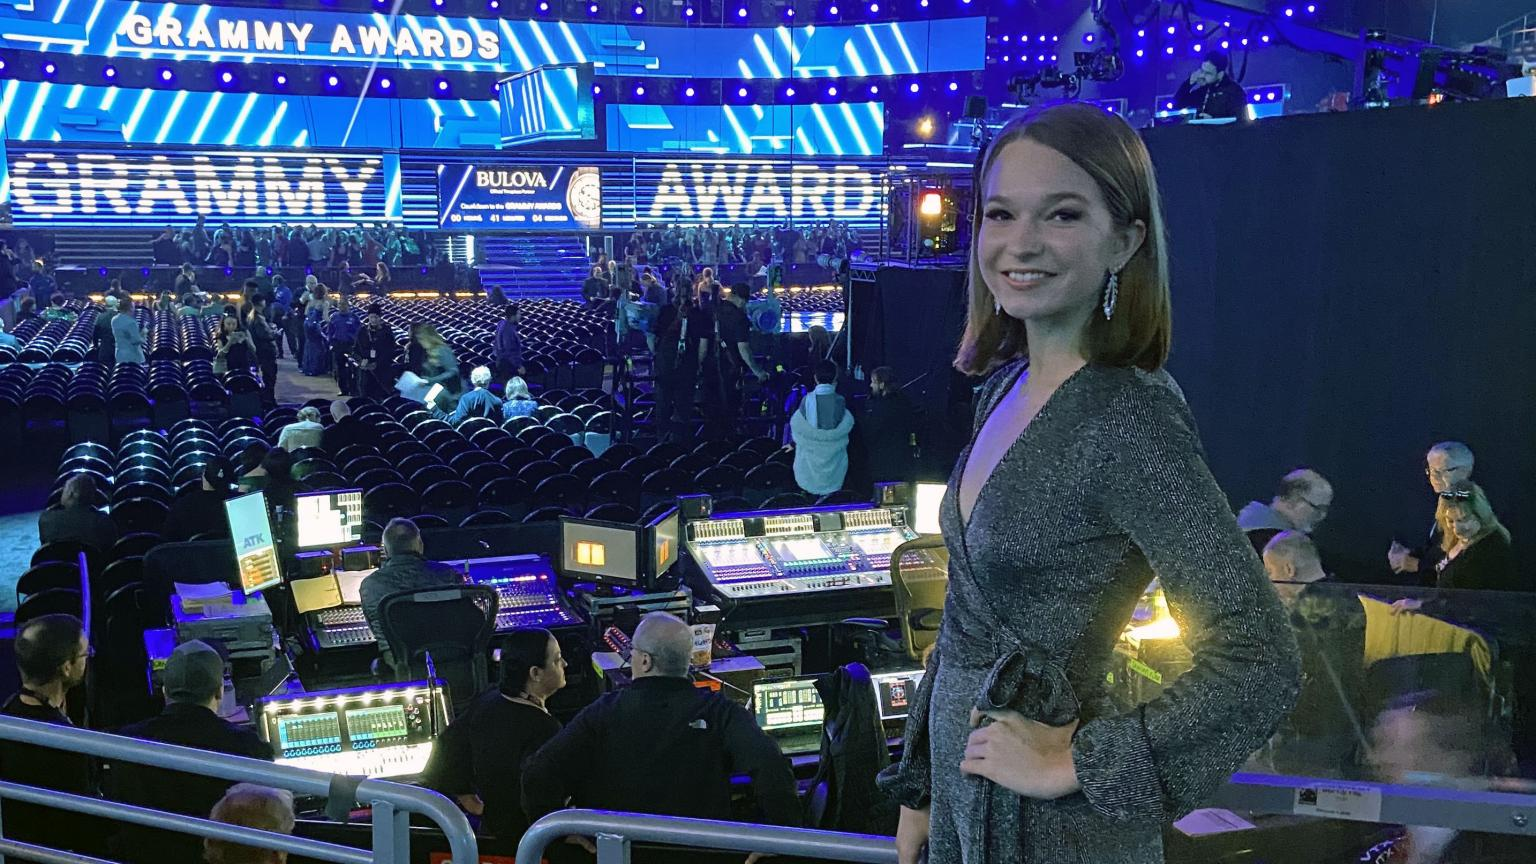 Music Tech Student Ally Stout posing in a dress in front of the stage for the 2020 Grammy Awards.